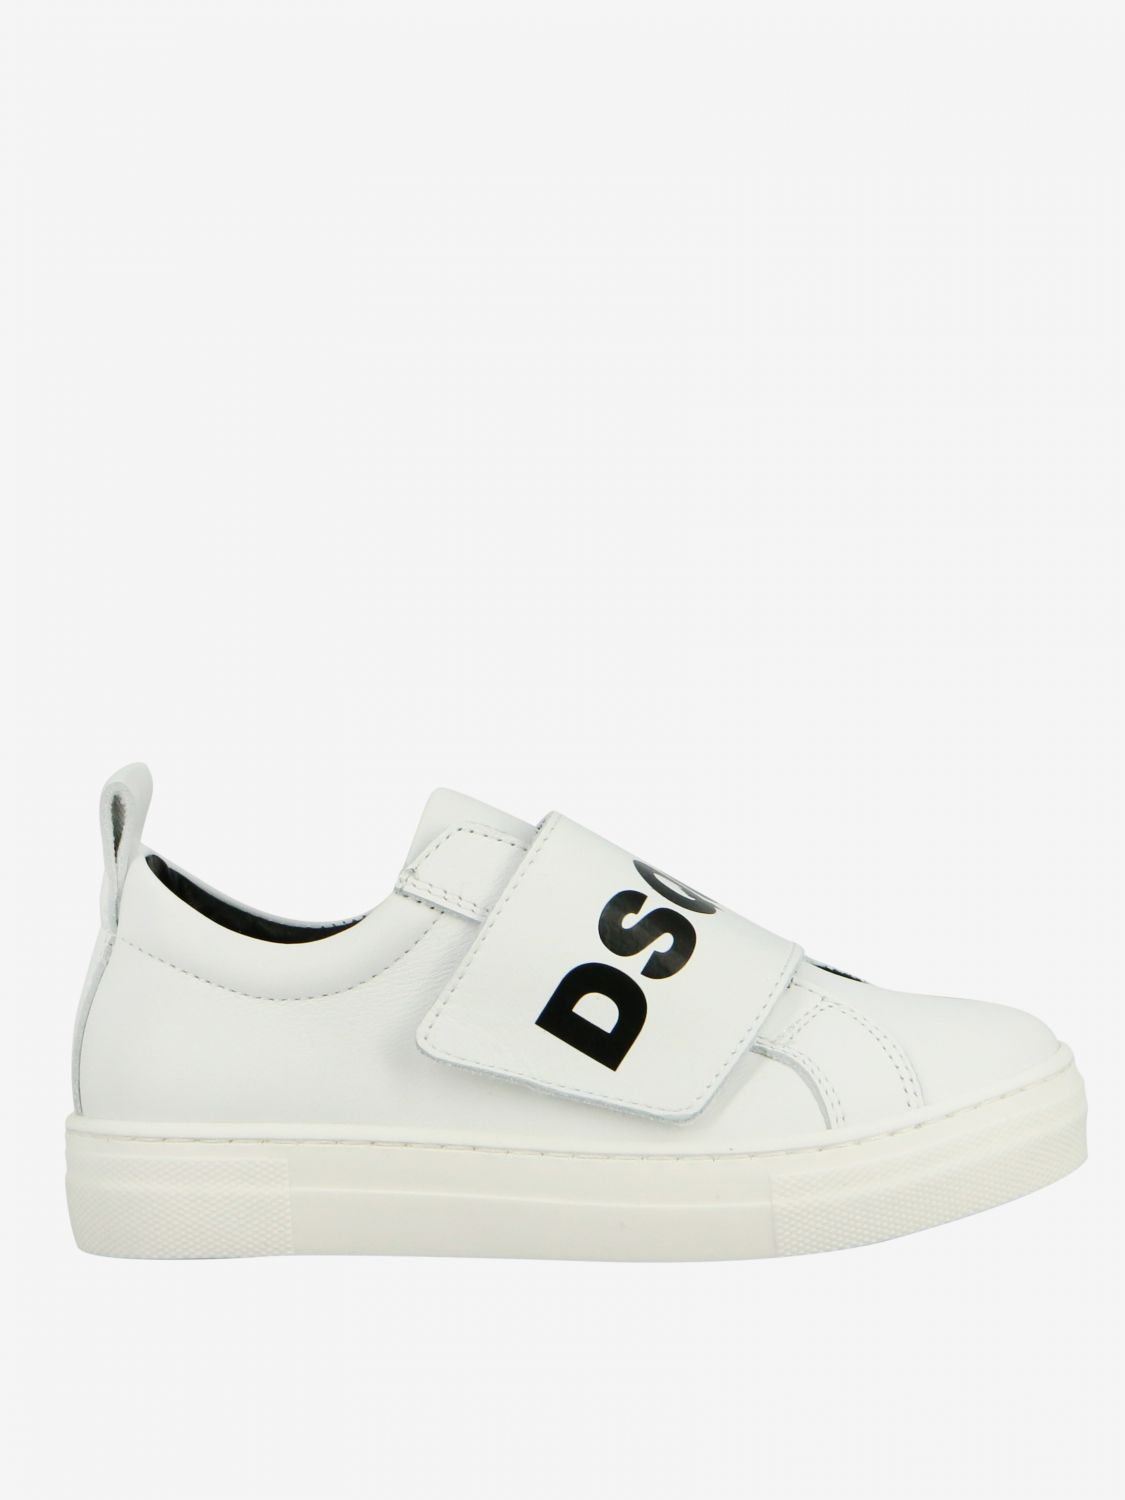 Shoes kids Dsquared2 Junior white 1